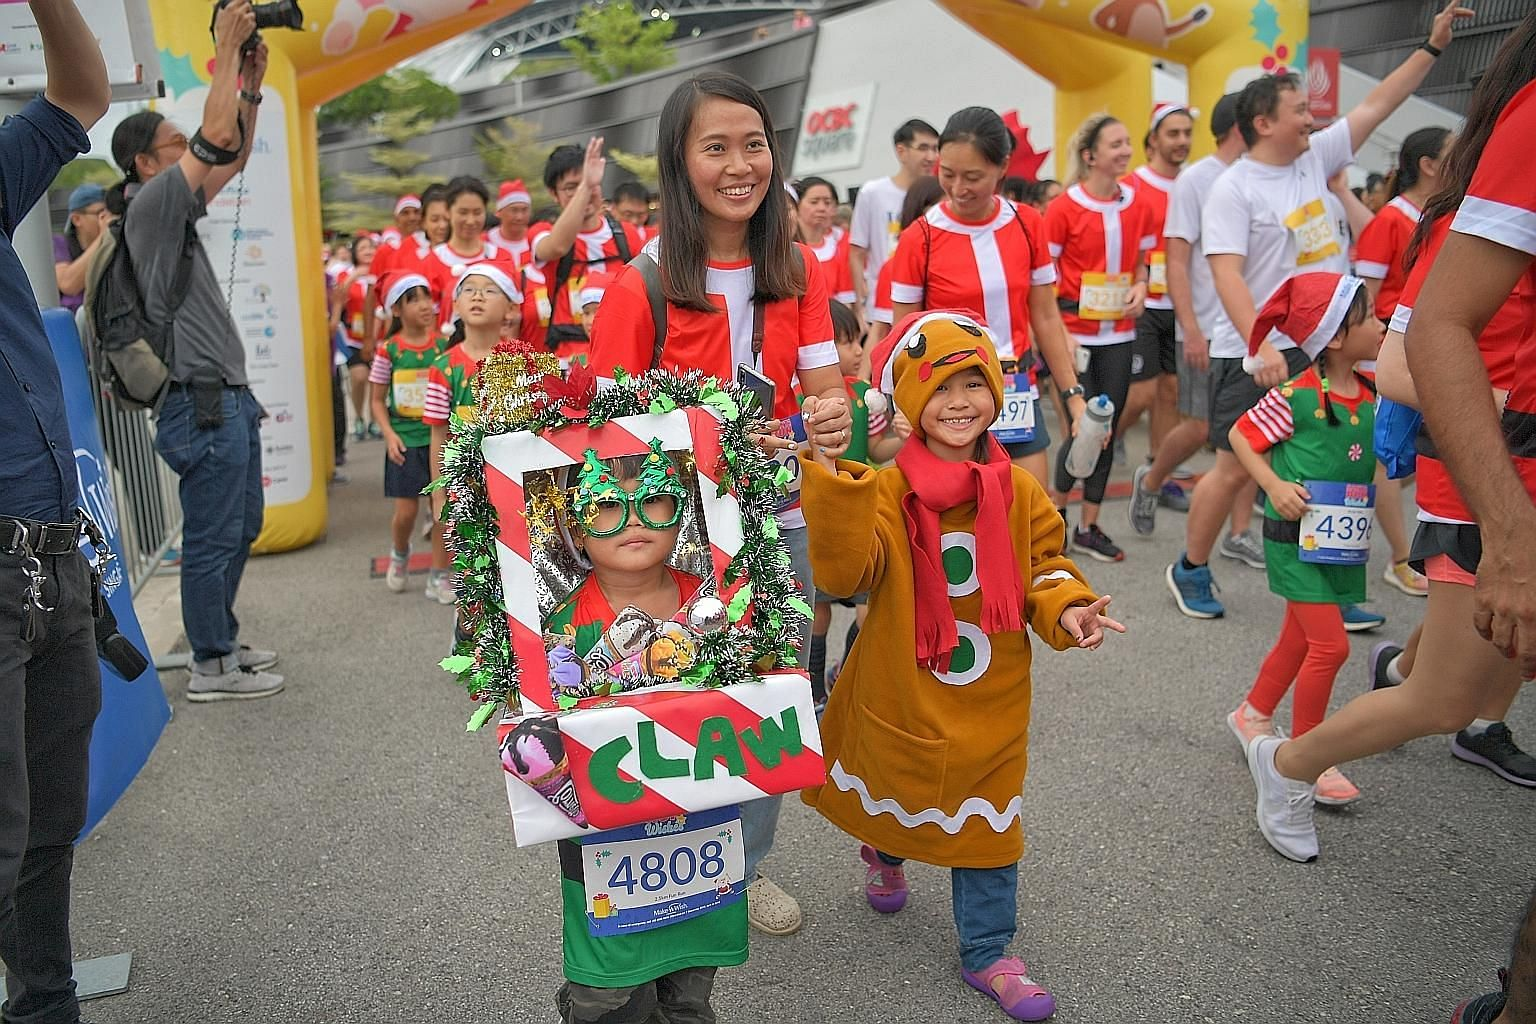 Runners dressed as a claw machine and a gingerbread man took part in a fund-raising Christmas fun run at the Singapore Sports Hub to grant the wishes of children with critical illnesses last Saturday. The 10km annual Santa Run for Wishes 2019, organi